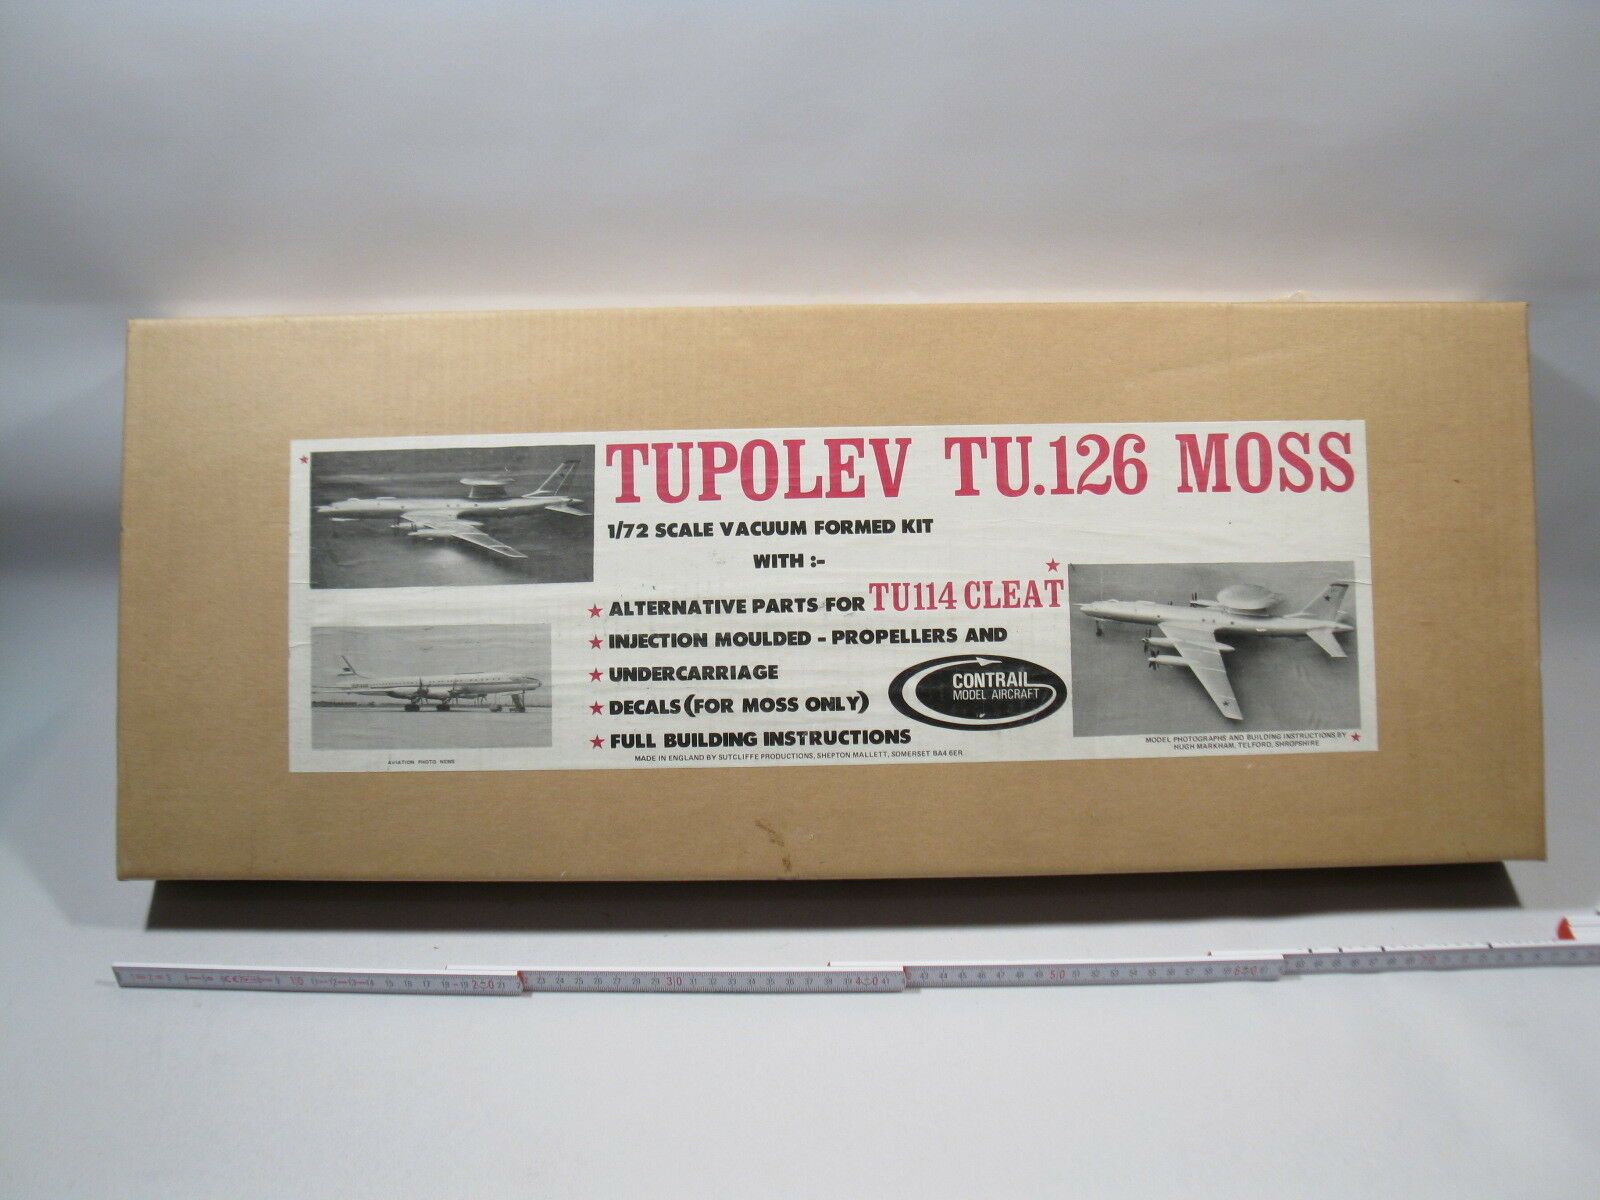 Contrail Model Tupolev TU 126 Moss 1 72 Vacuform Tiefziehteile lose in box m4325  | Nicht so teuer